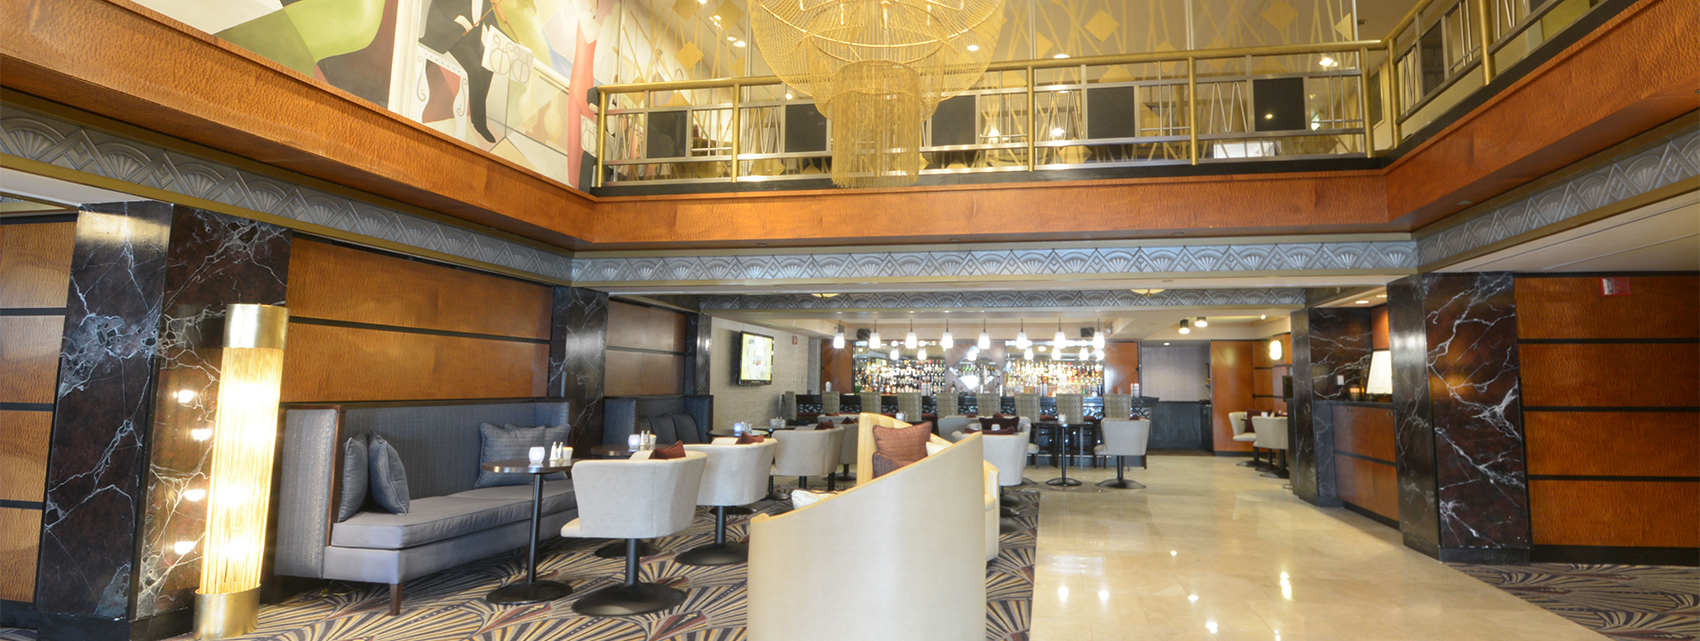 sideview of hotel lobby